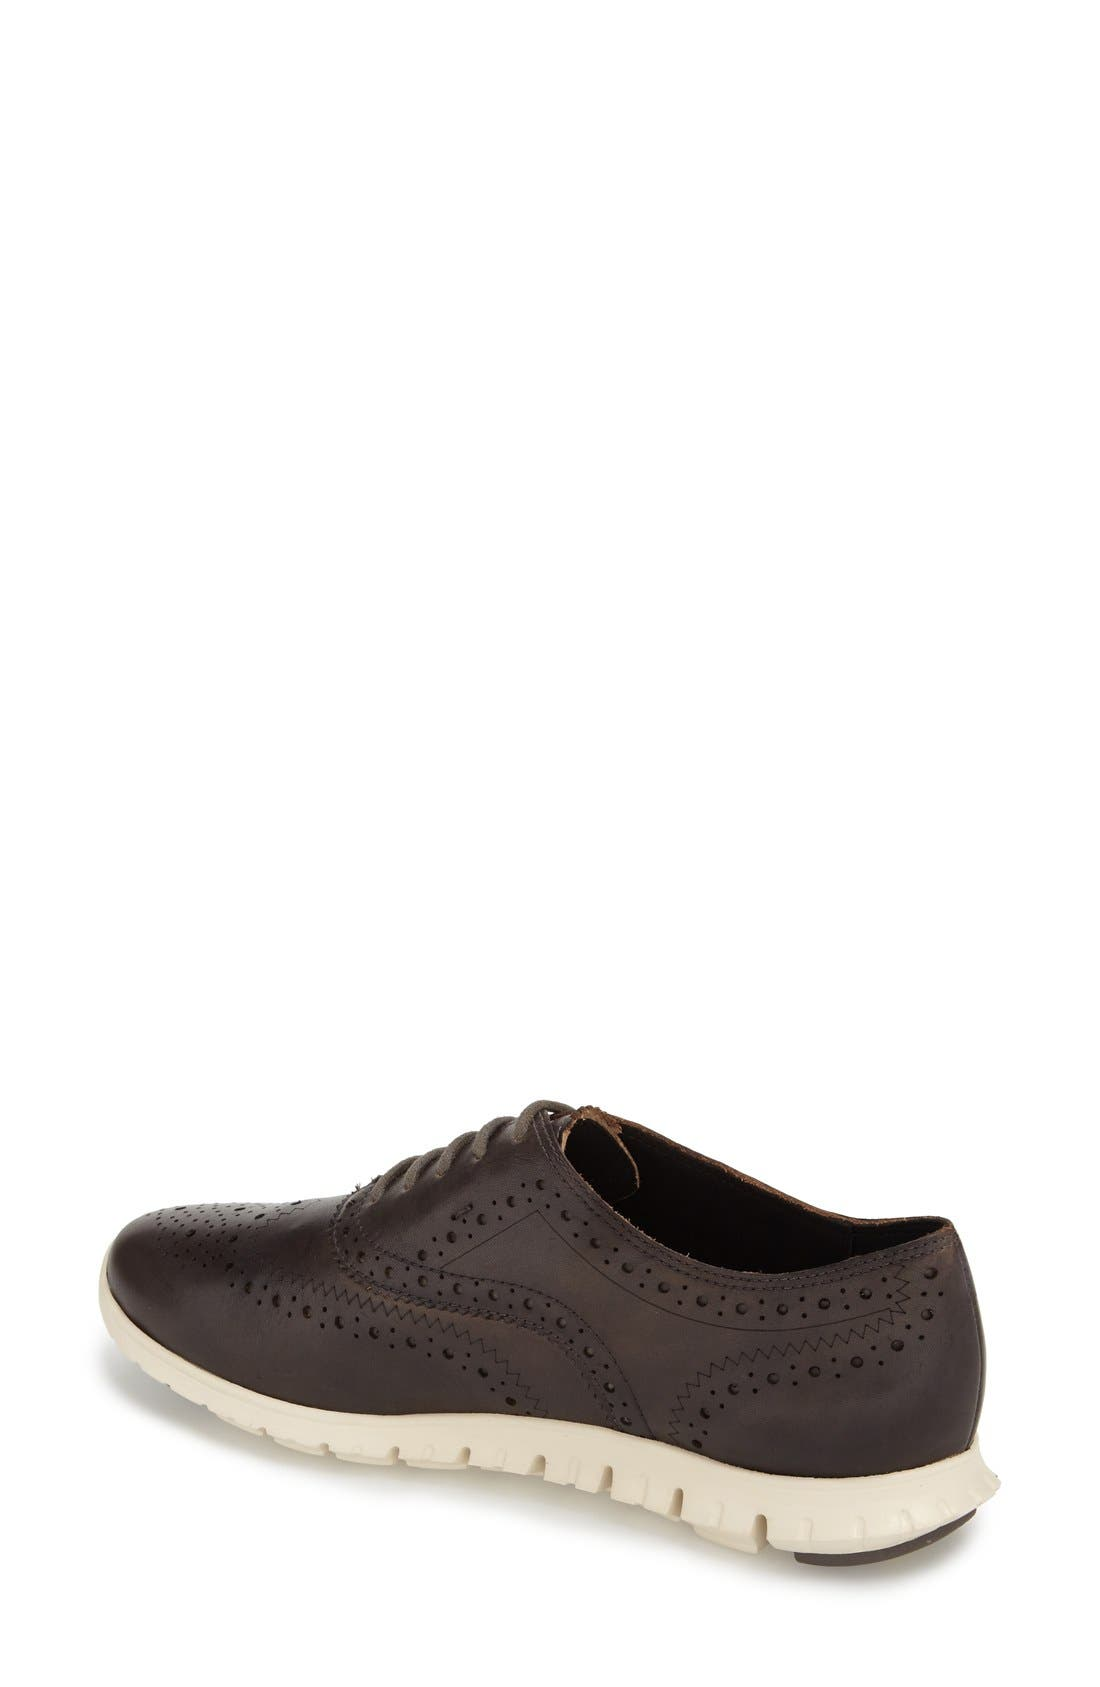 'ZeroGrand' Perforated Wingtip,                             Alternate thumbnail 41, color,